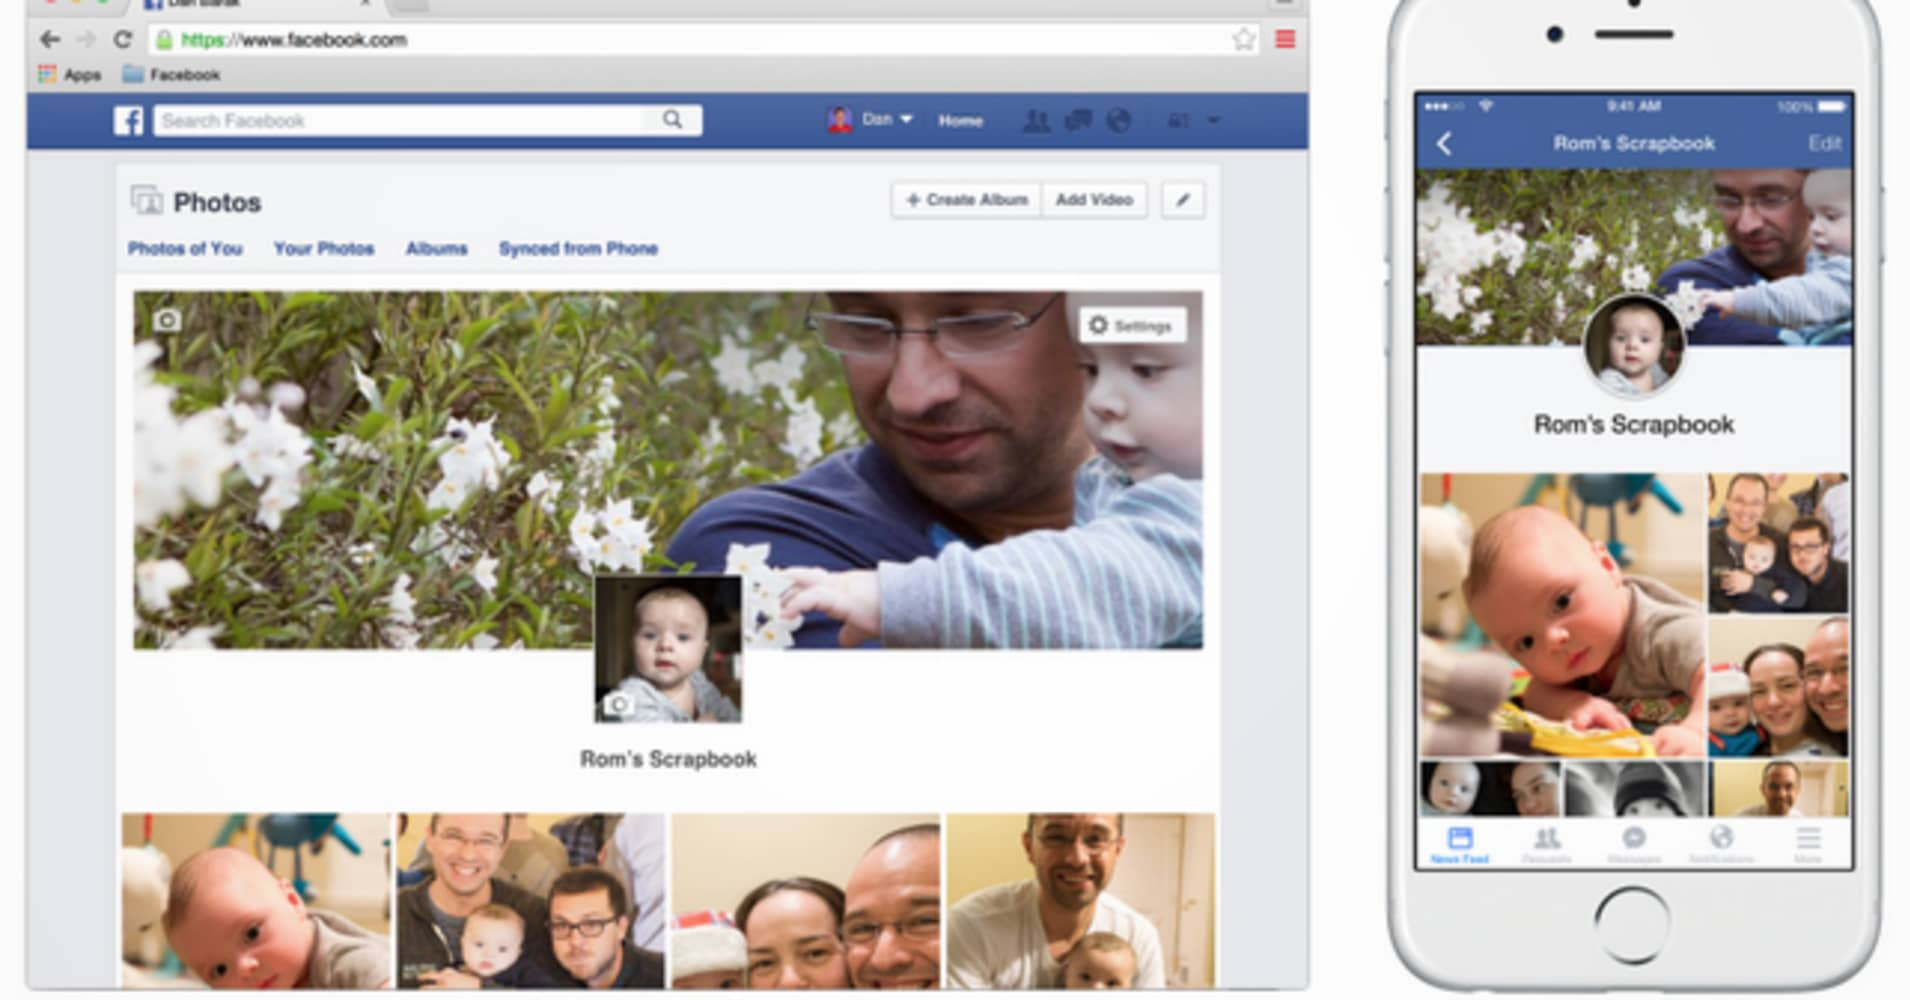 How to make scrapbook in facebook - How To Make Scrapbook In Facebook 5